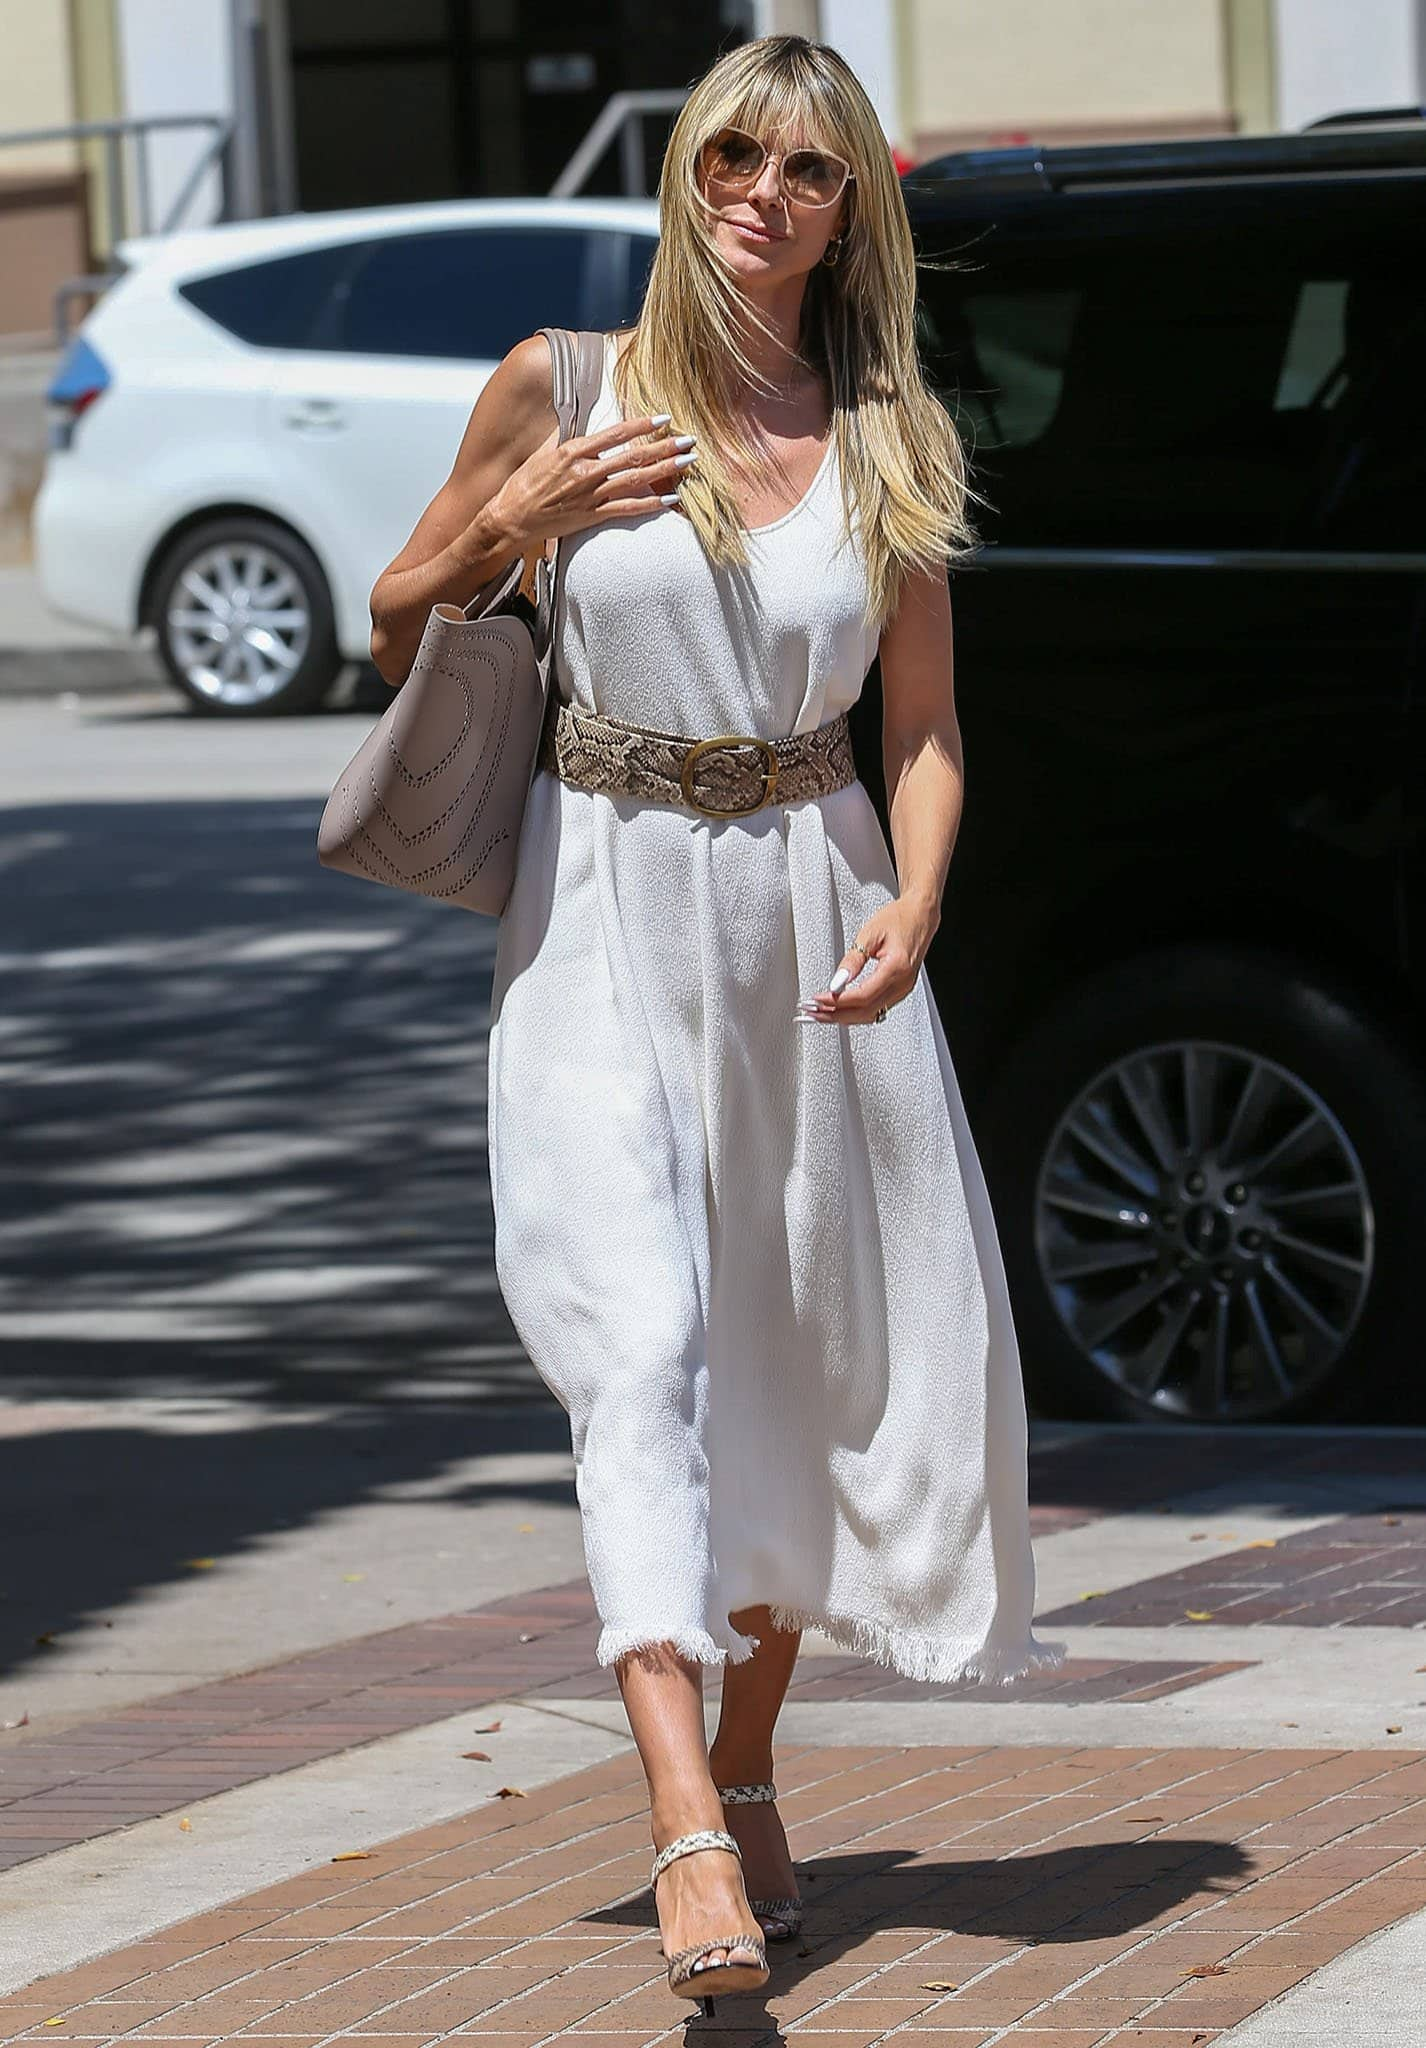 Heidi Klum goes the boho route in a white sleeveless dress with a fringed hem and a snakeskin belt on April 19, 2021